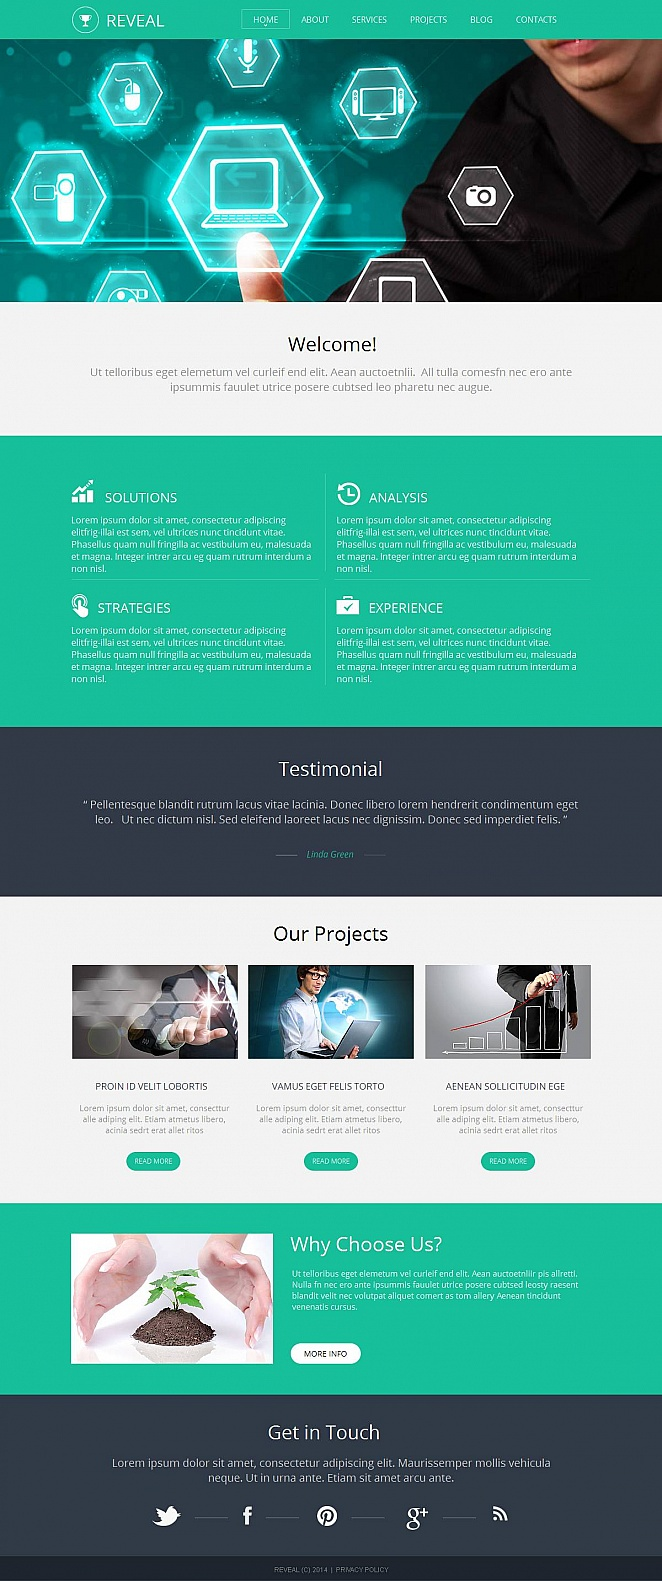 Mint Colored Website Template for Management Companies - image